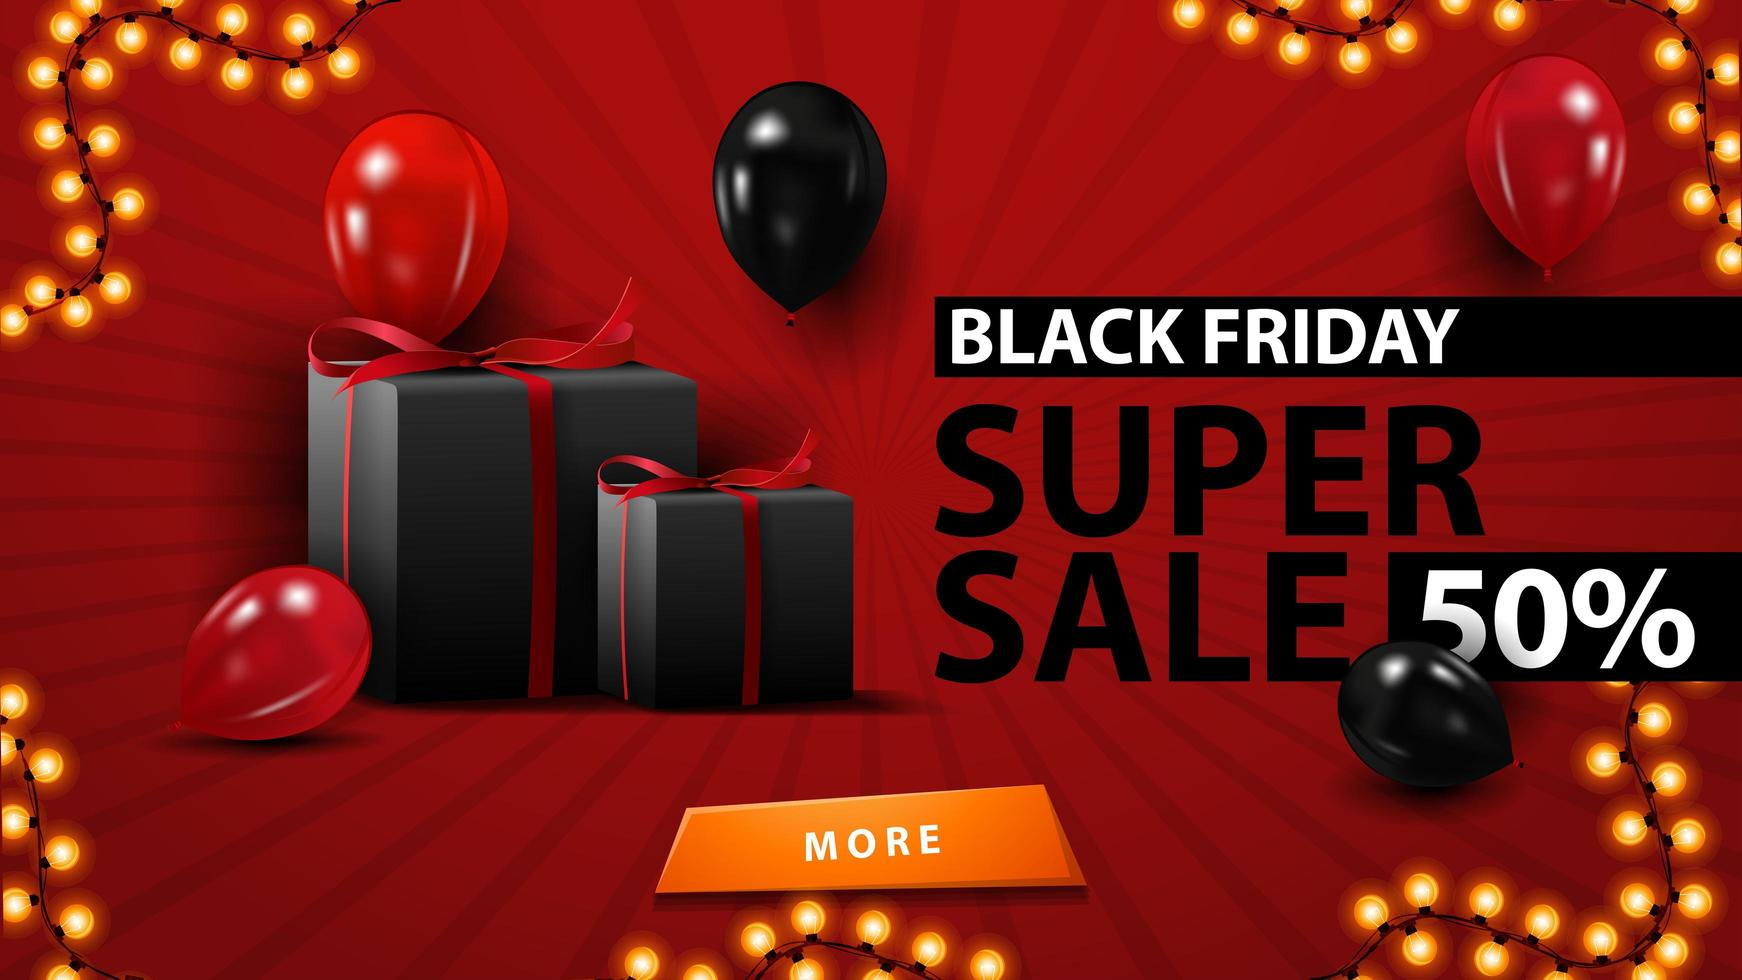 Black Friday super sale, up to 50 off, creative red template in minimalistic modern style with balloons and gifts. vector